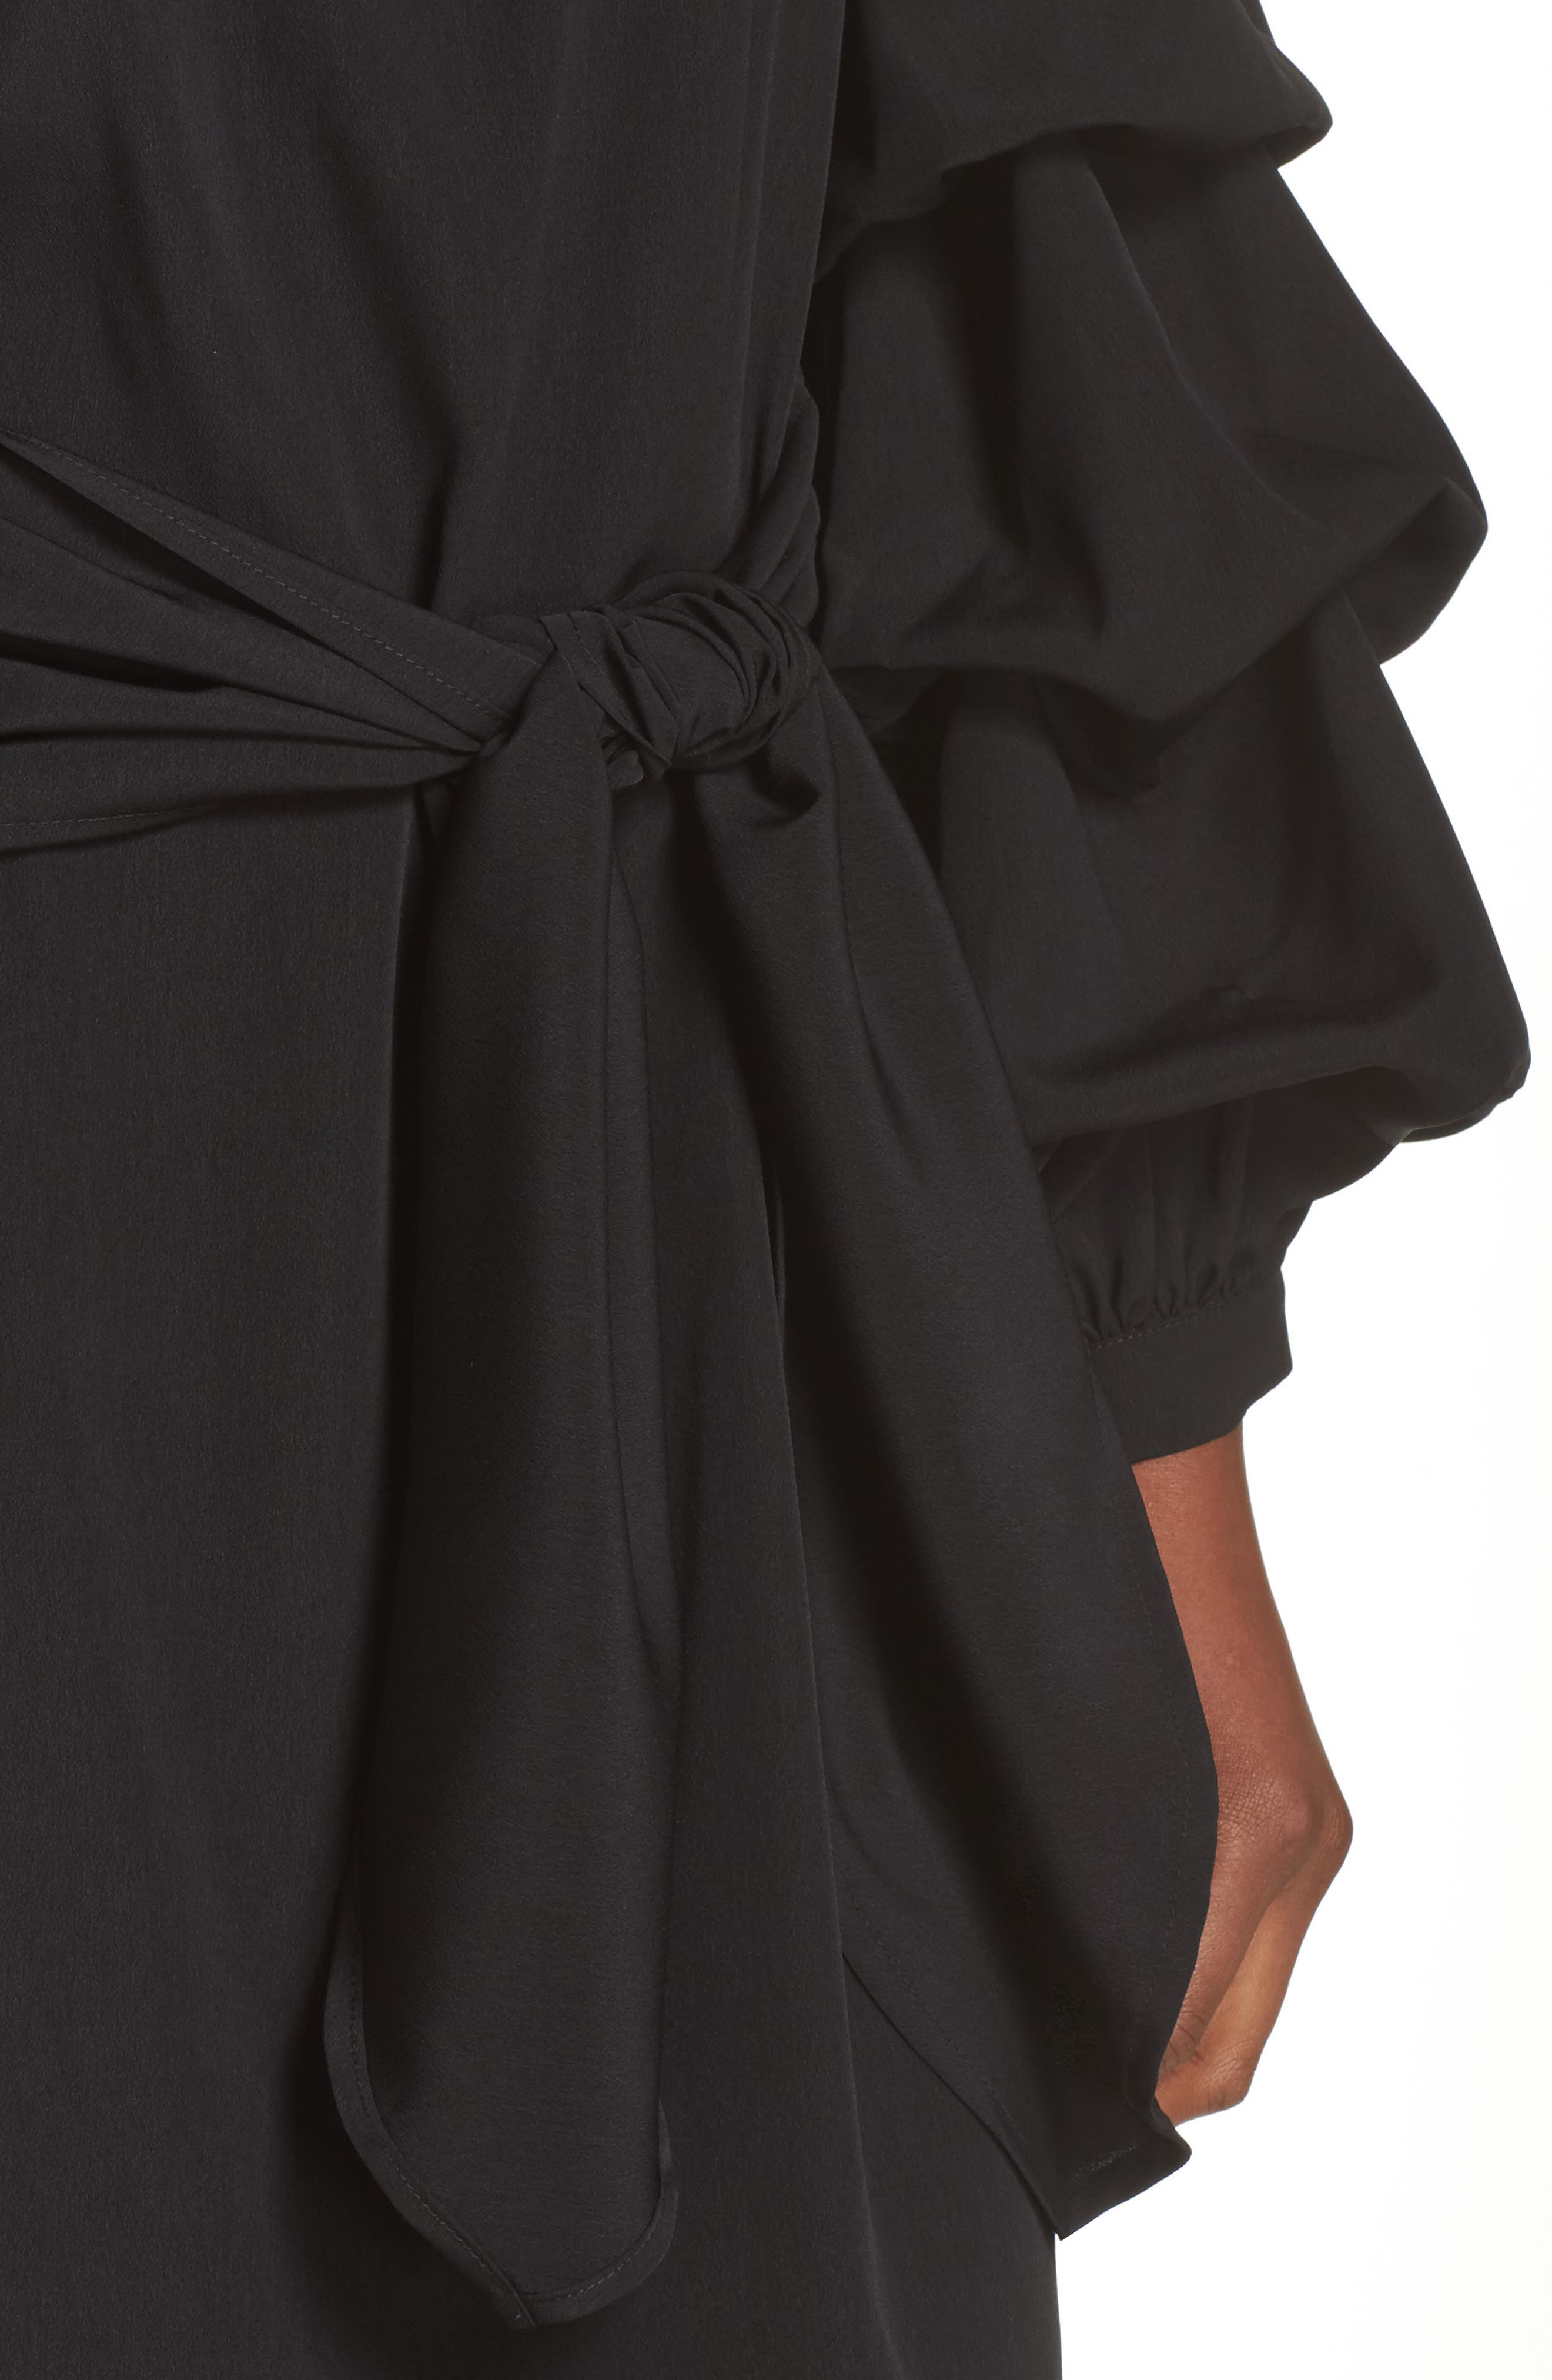 Off the Shoulder Tiered Sleeve Dress,                             Alternate thumbnail 4, color,                             002